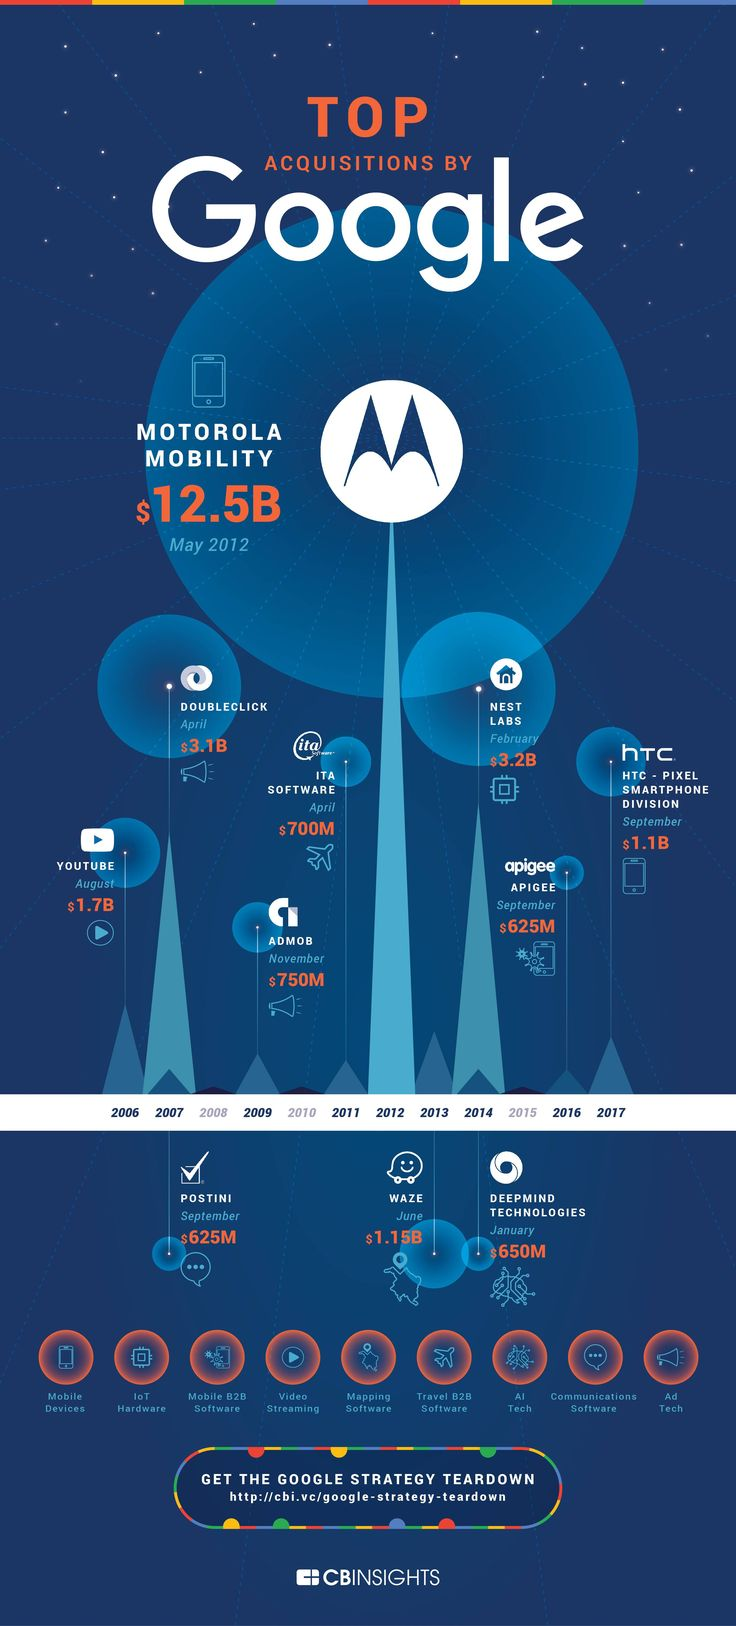 Google's Acquisitions History: The Top 11 - Infographic